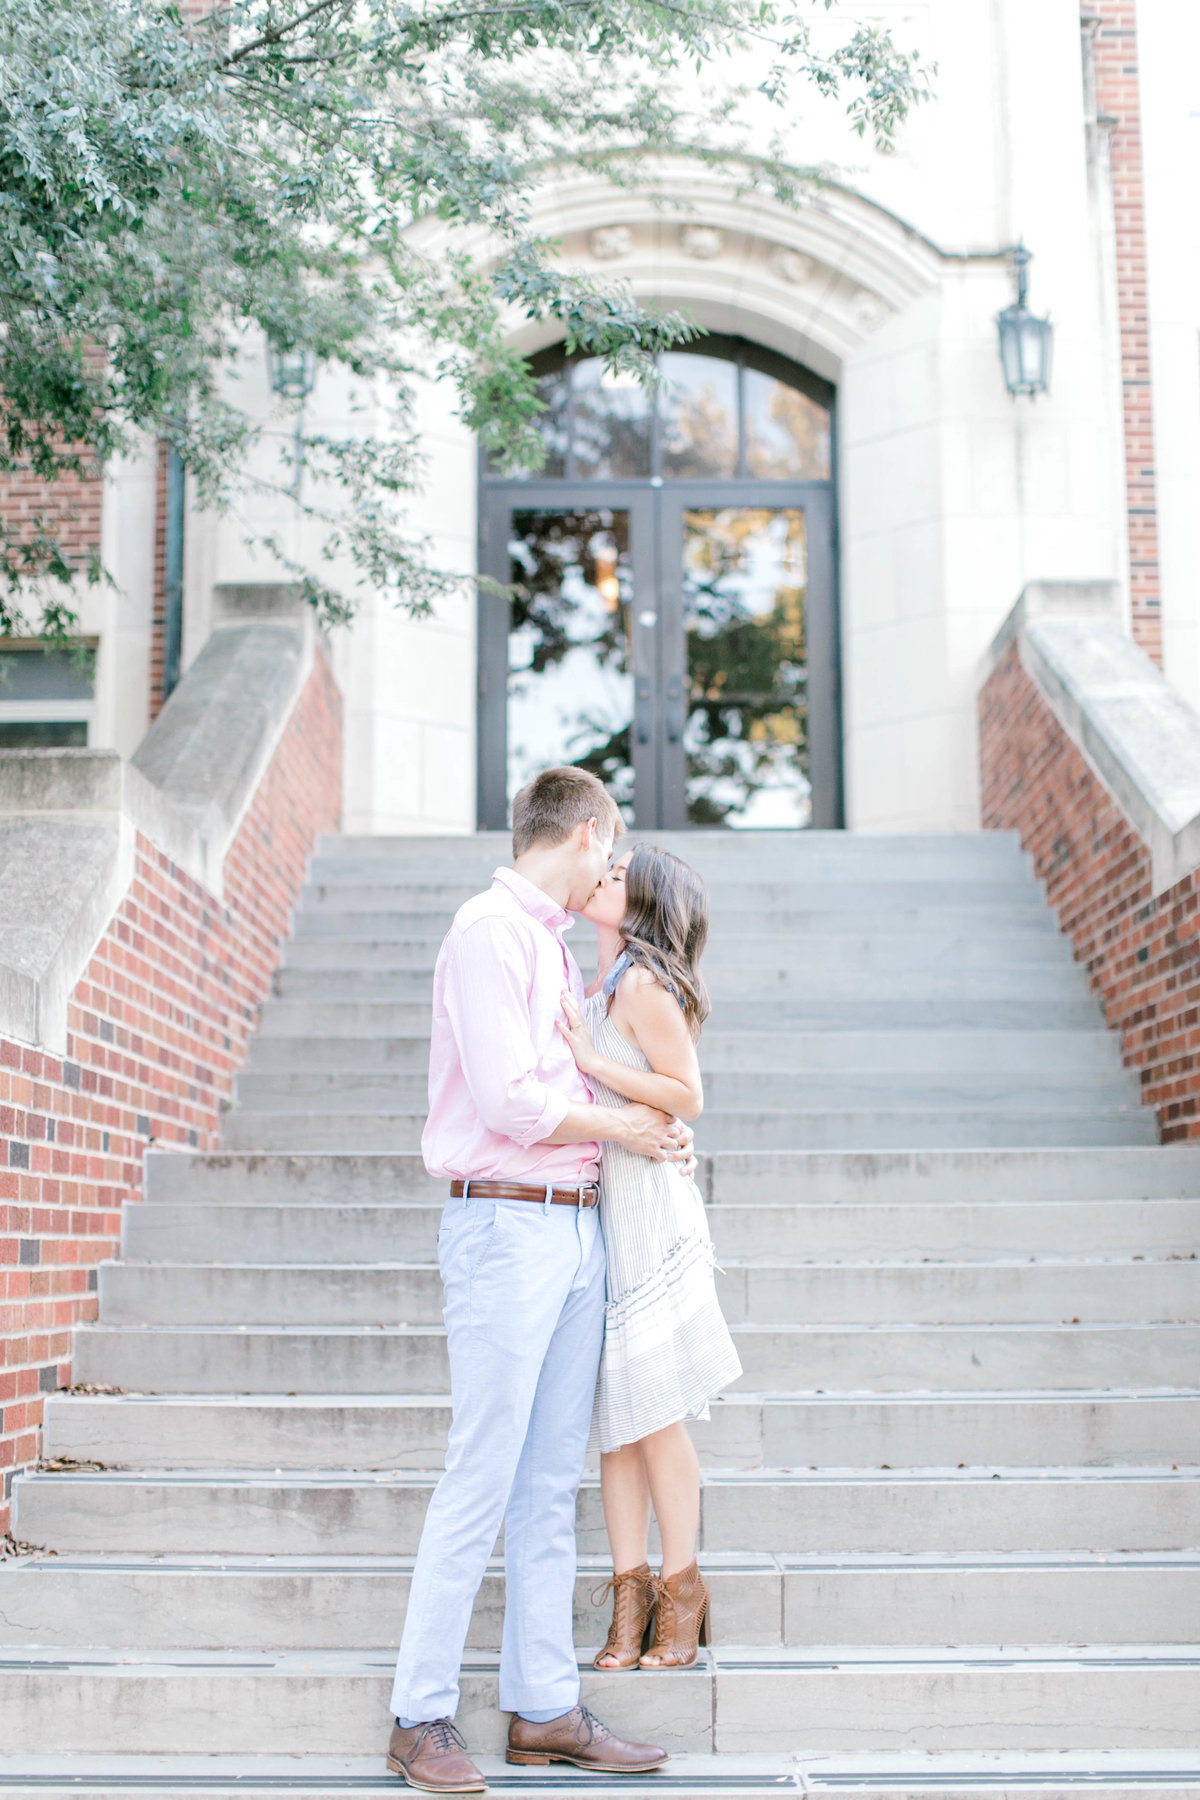 Melanie Foster Photography - Norman Oklahoma Senior and Engagement Photographer - Couple Engagement Photo - 53